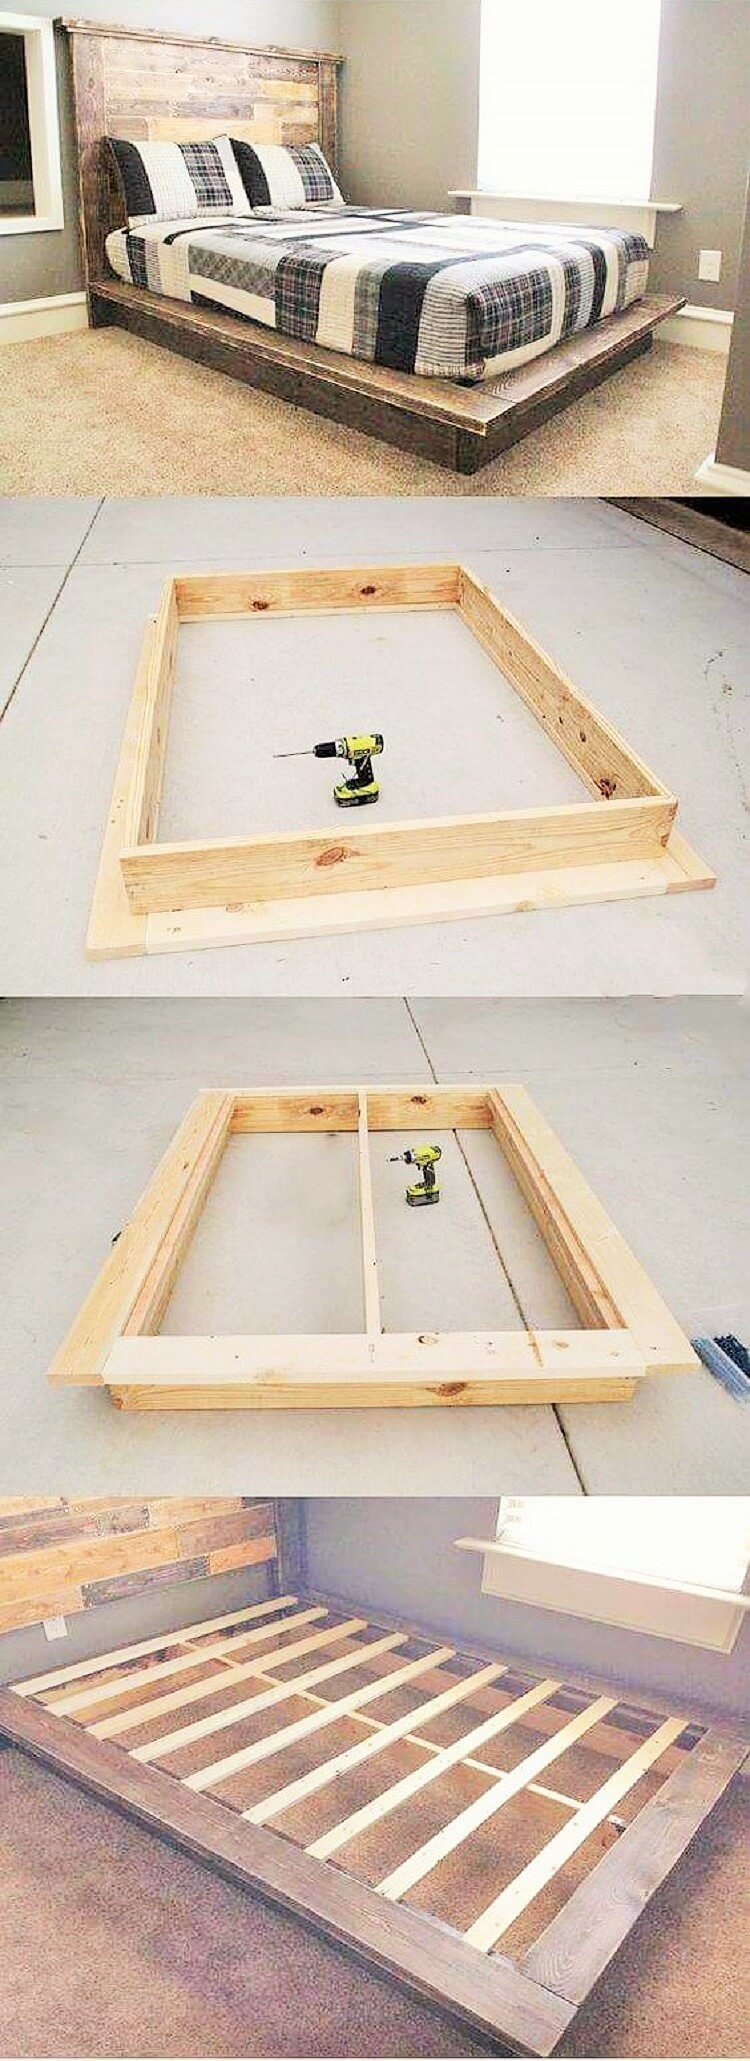 Old-Pallet- Diy-Recycle-Things-Projects-28